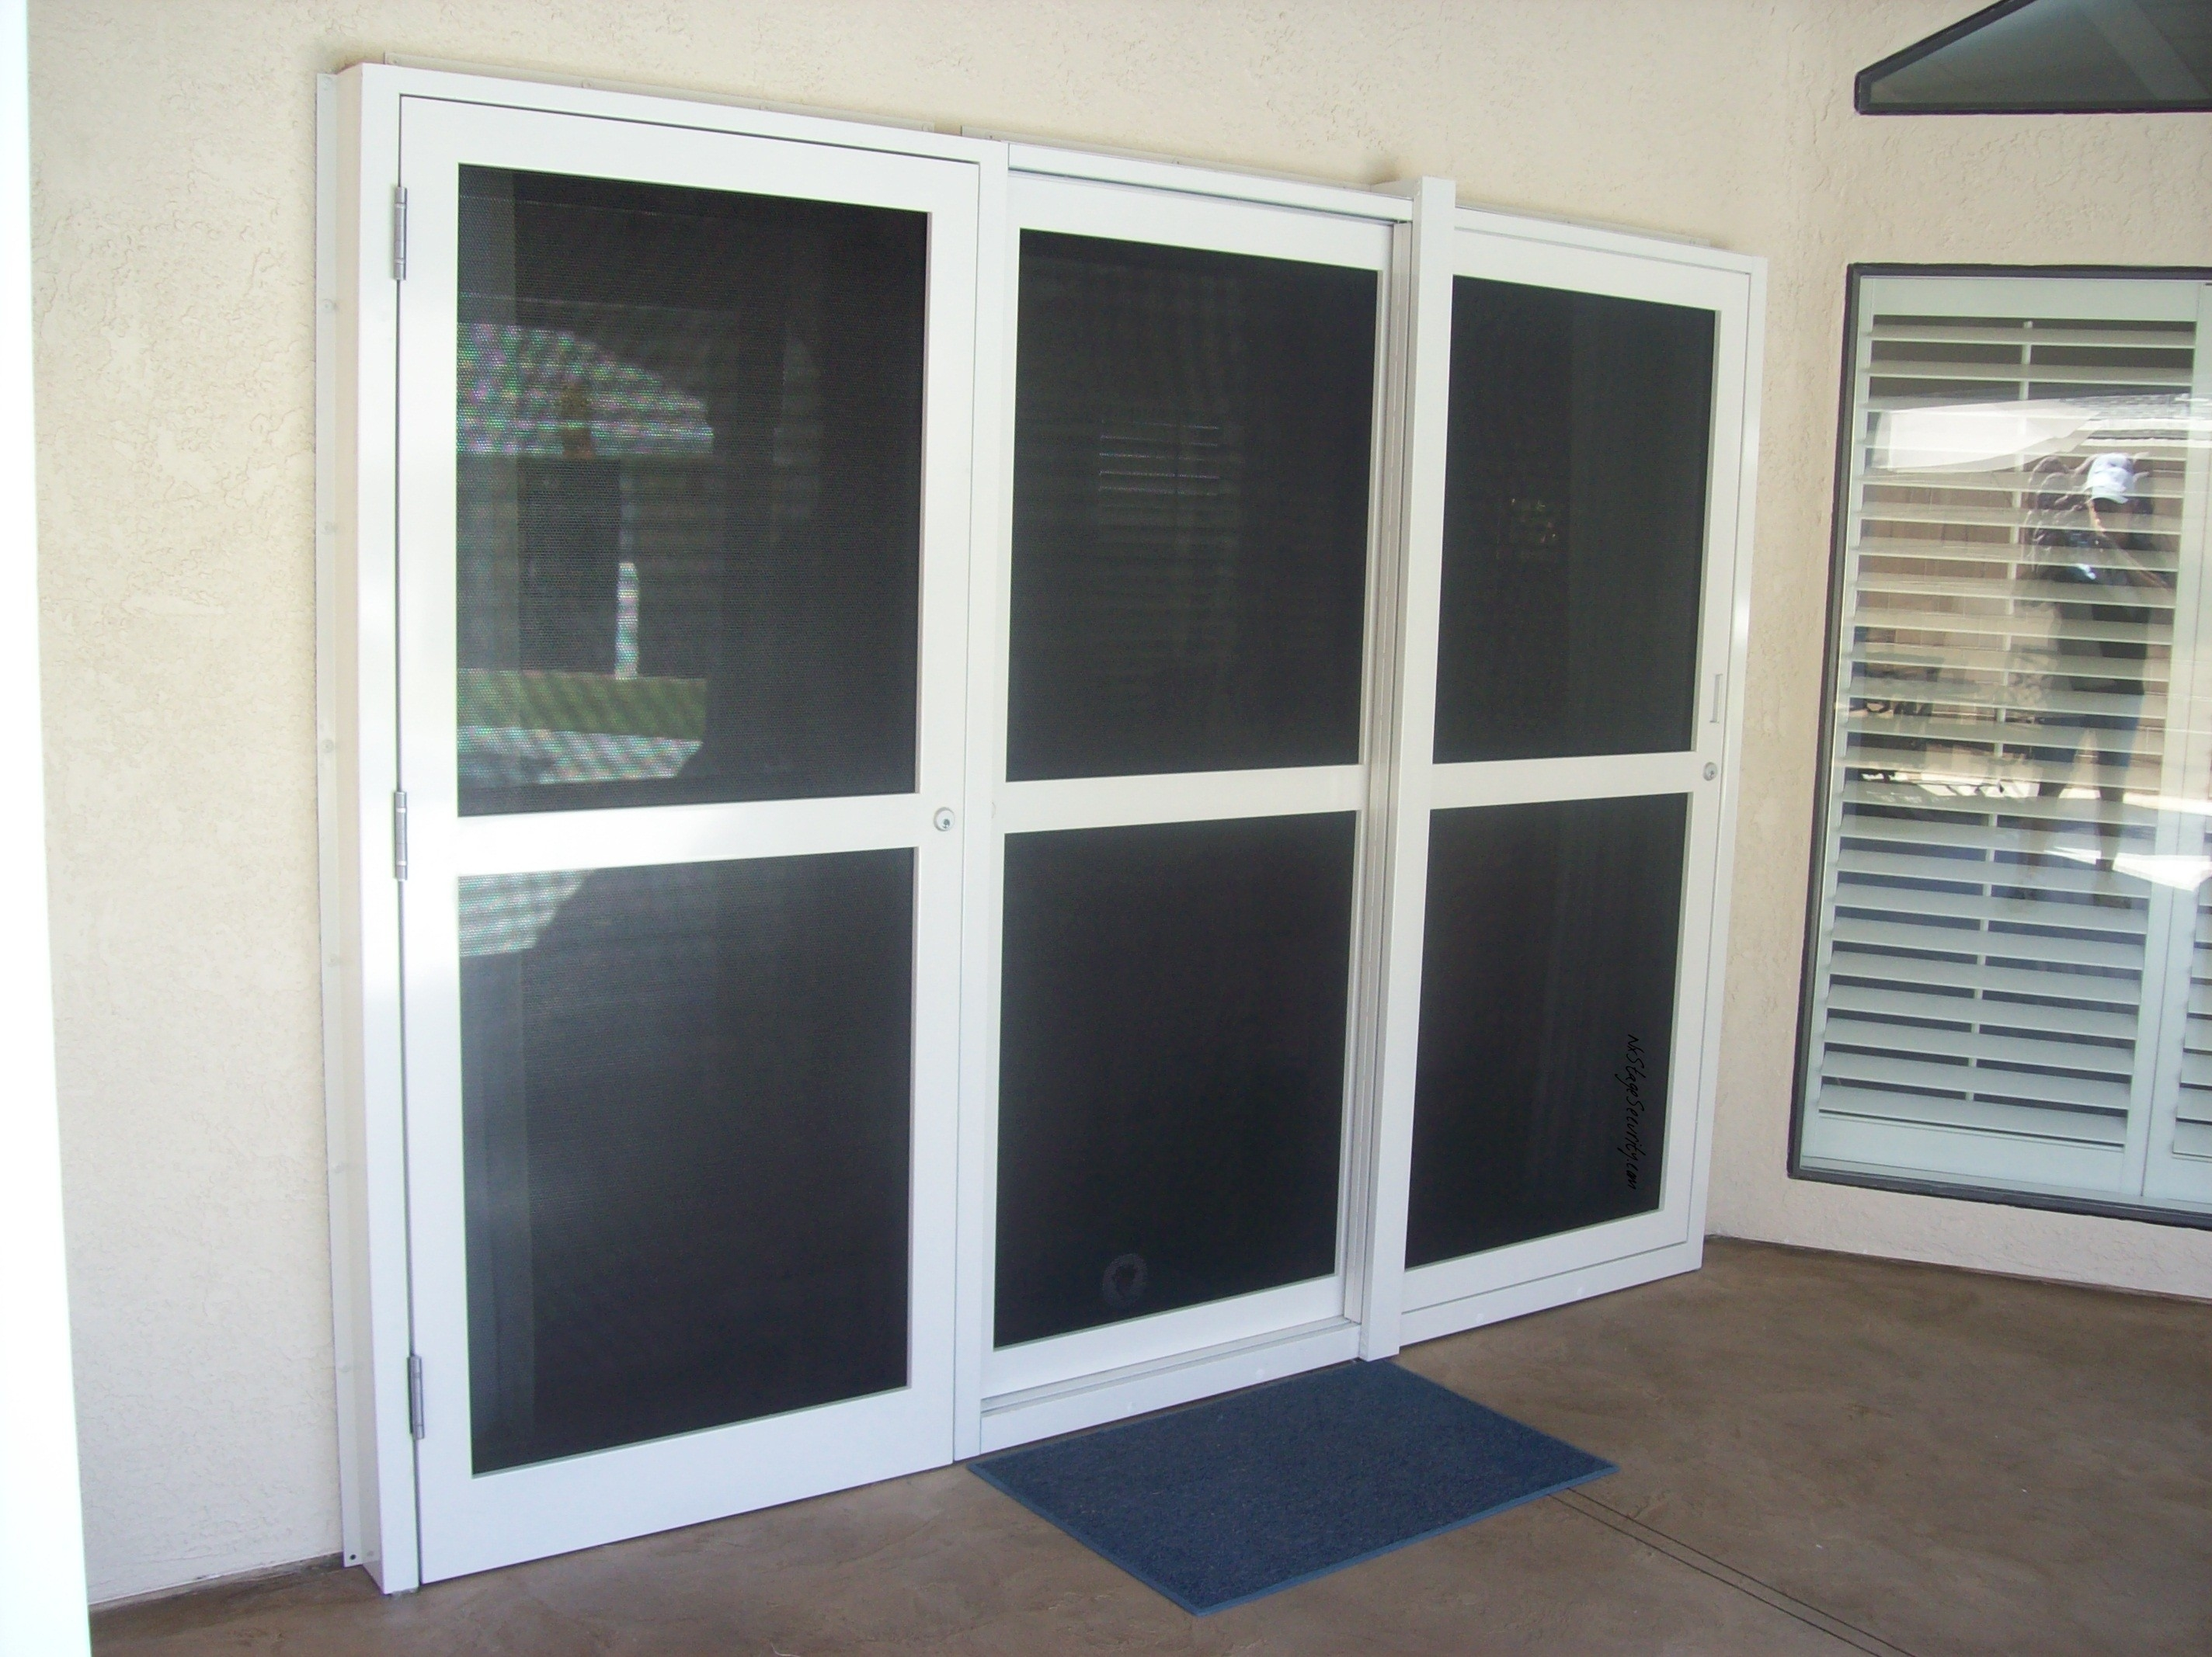 Secure Sliding Patio DoorsSecure Sliding Patio Doors